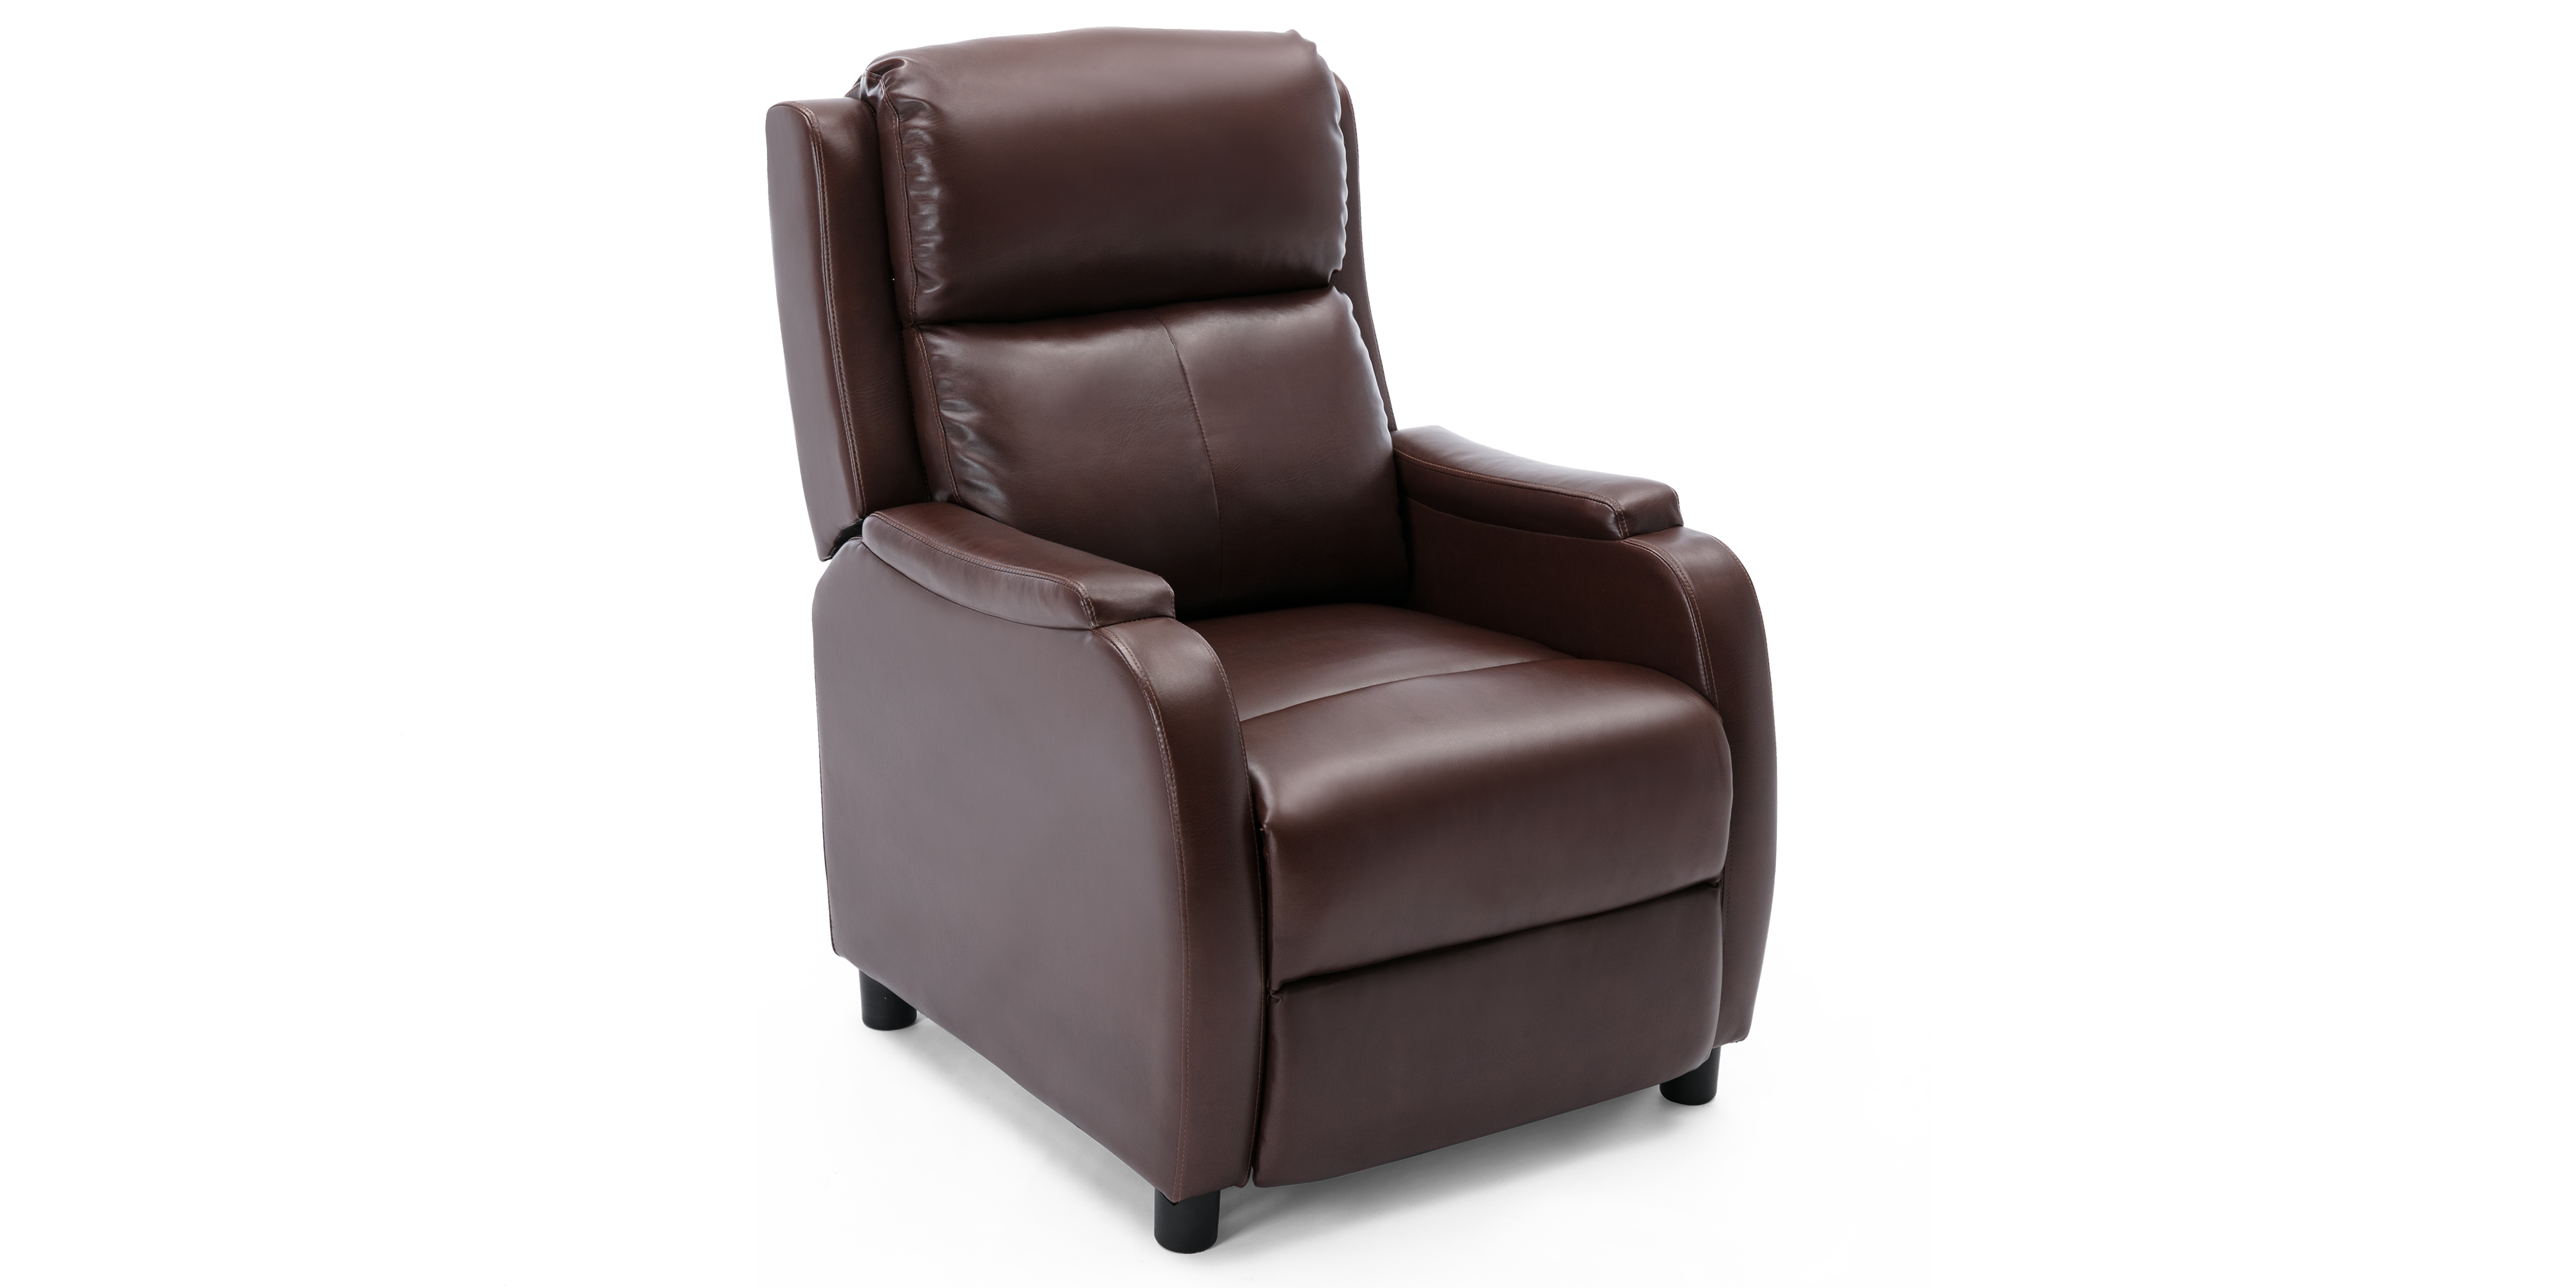 Cameron Leather Push Back Recliner Chair in Brown